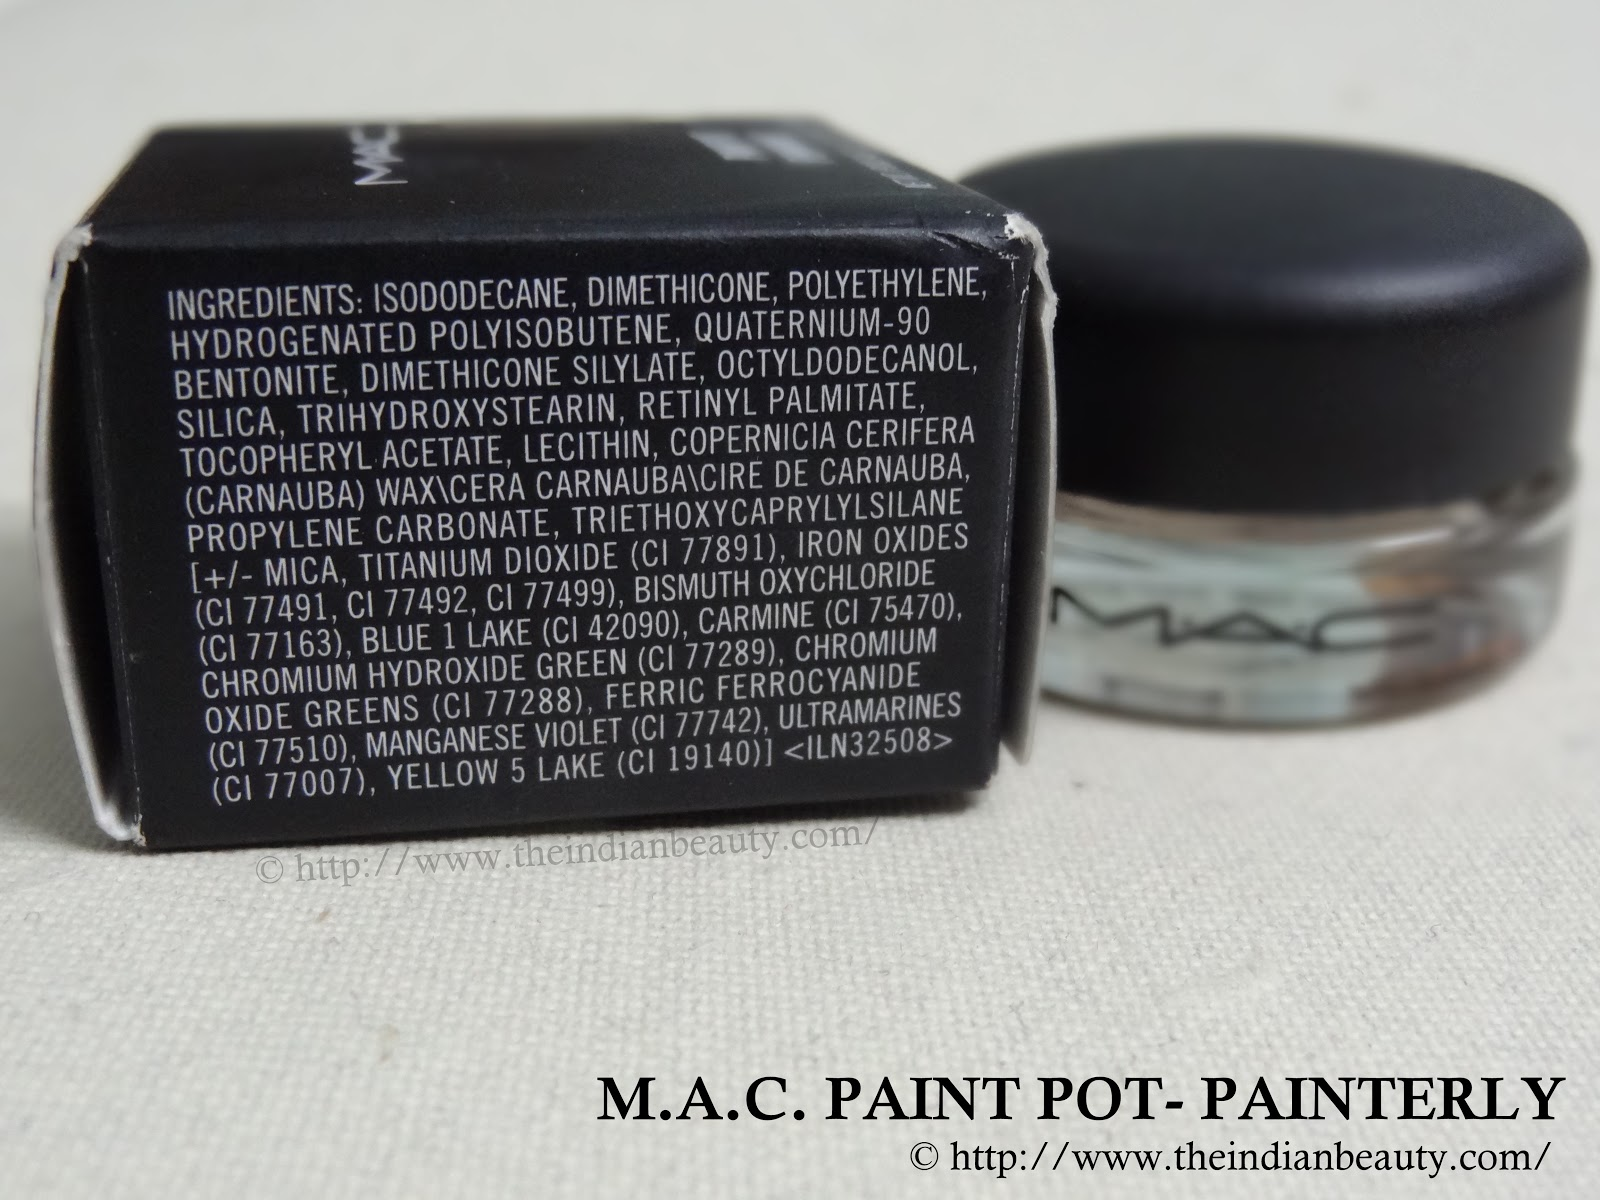 M.A.C. Paint Pot- Painterly: Review, swatches, demo - The Indian ...